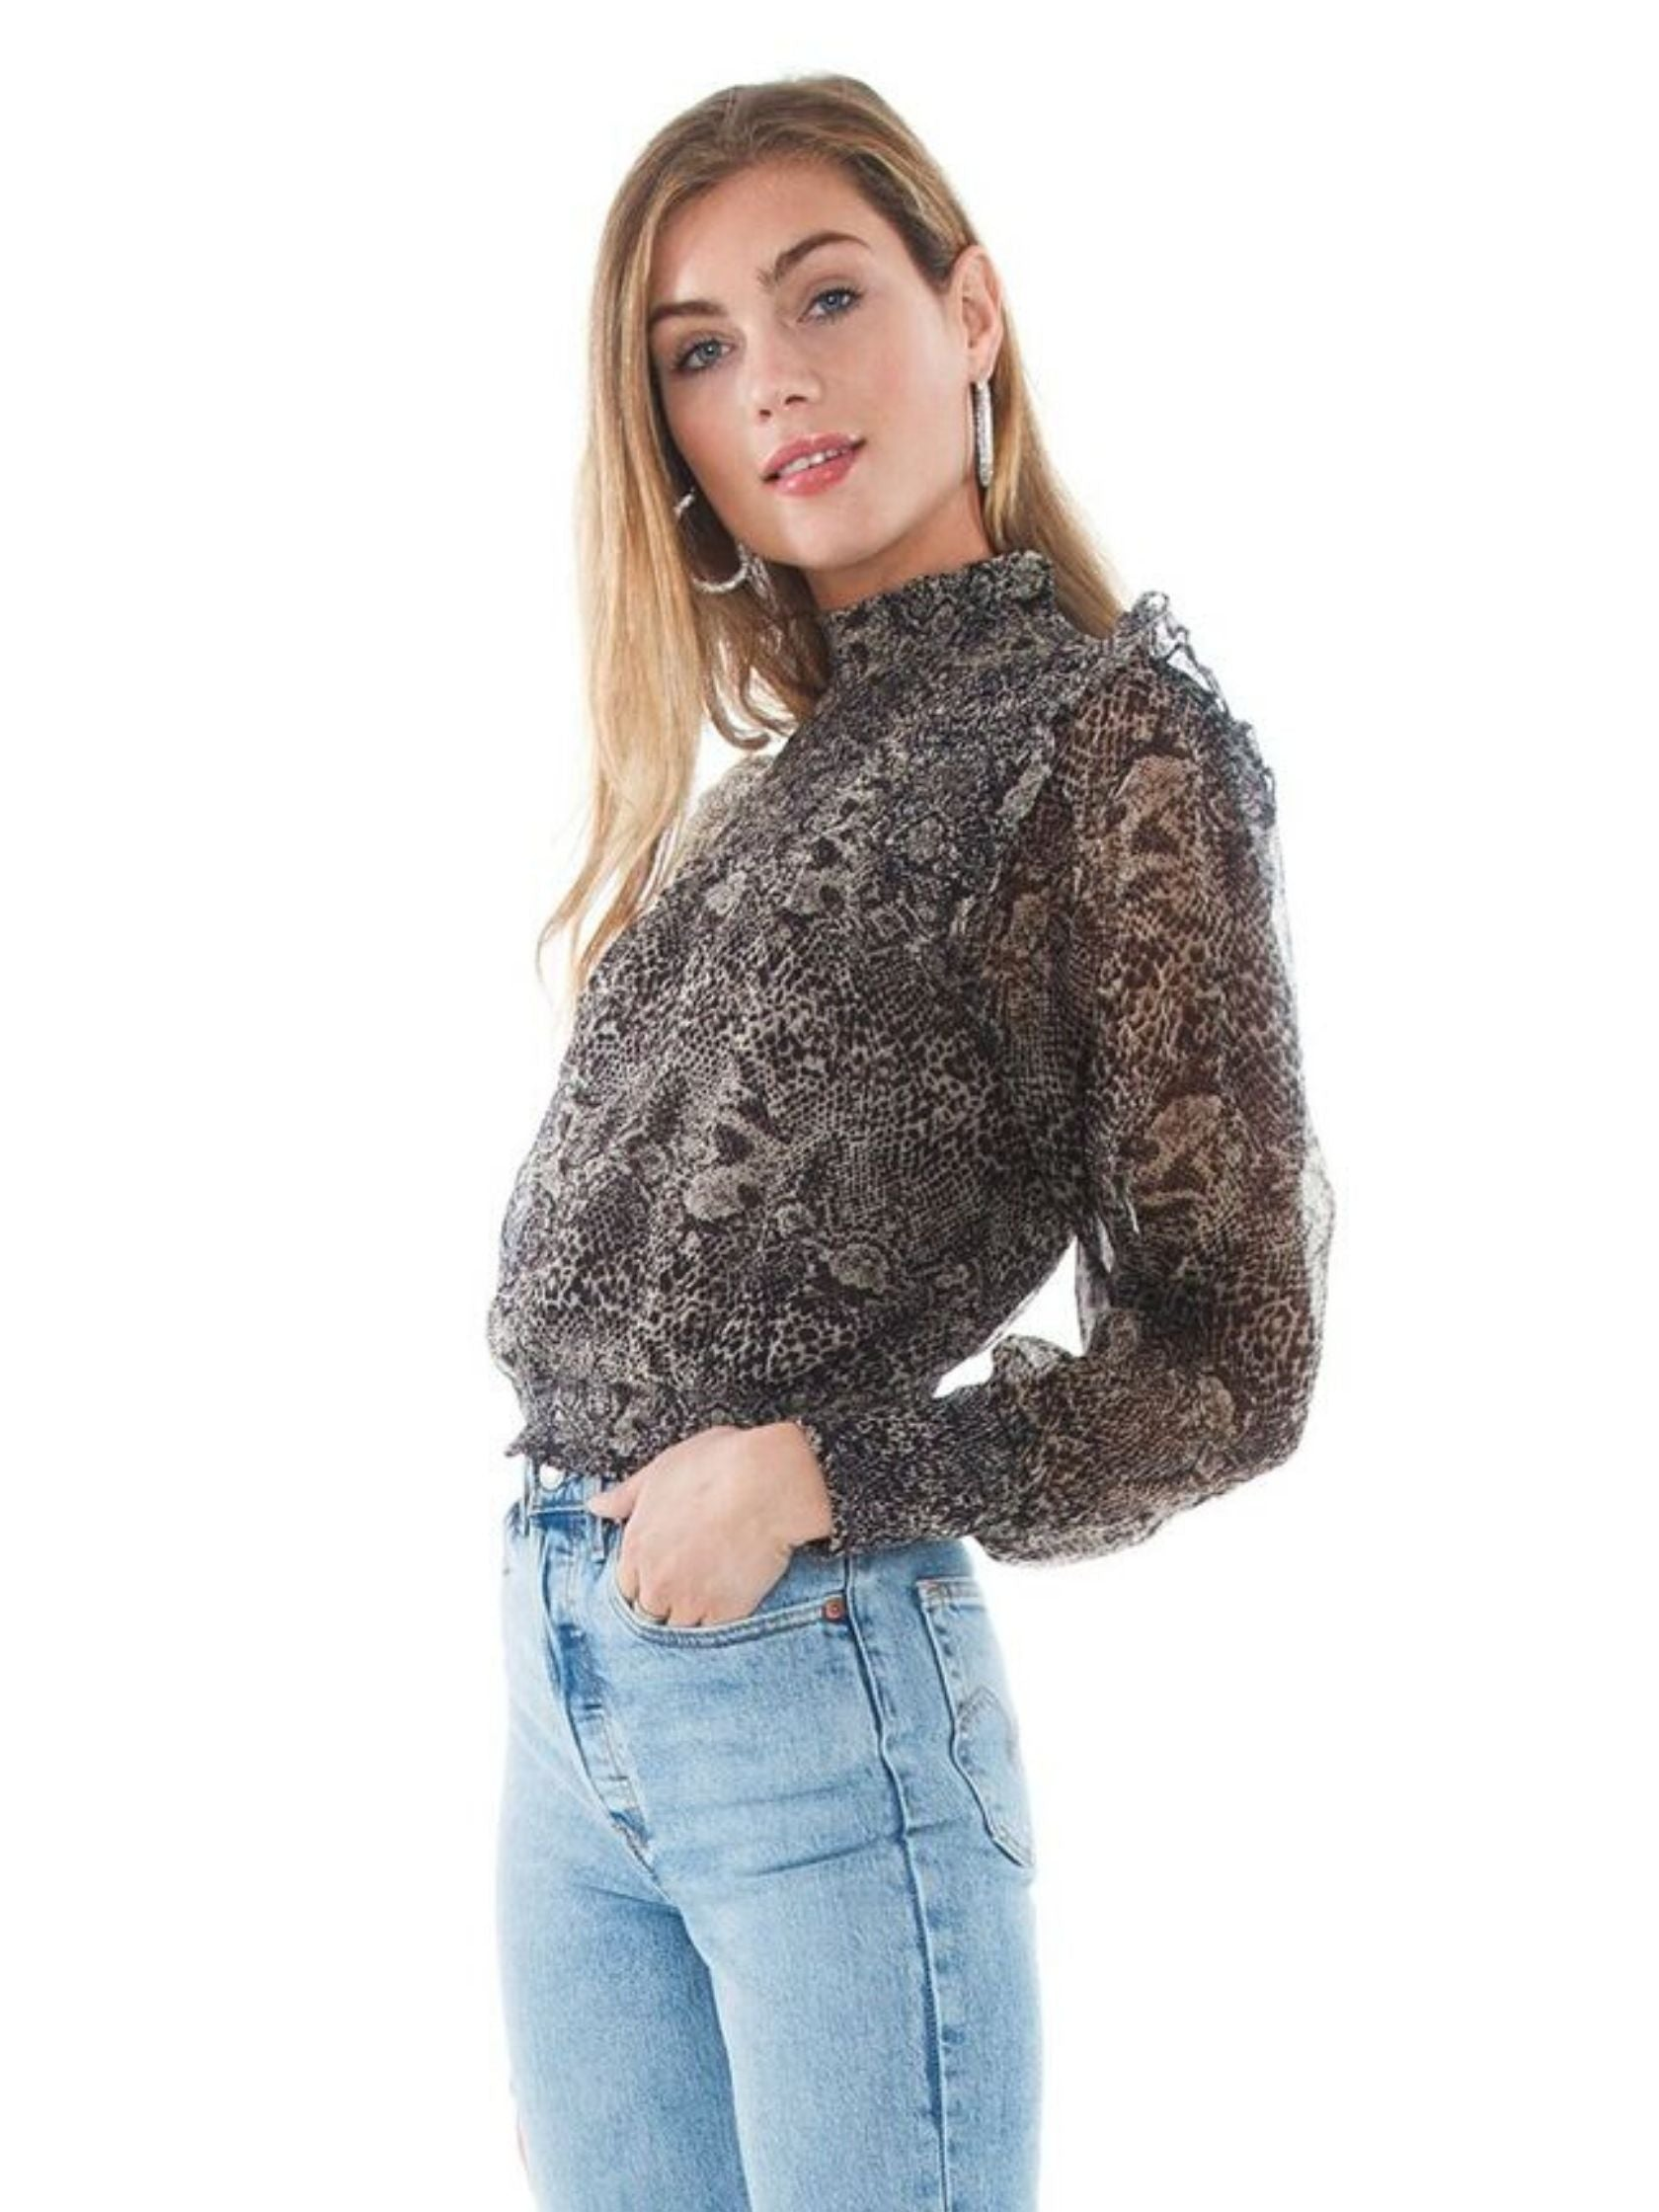 Women wearing a top rental from Free People called Roma Blouse